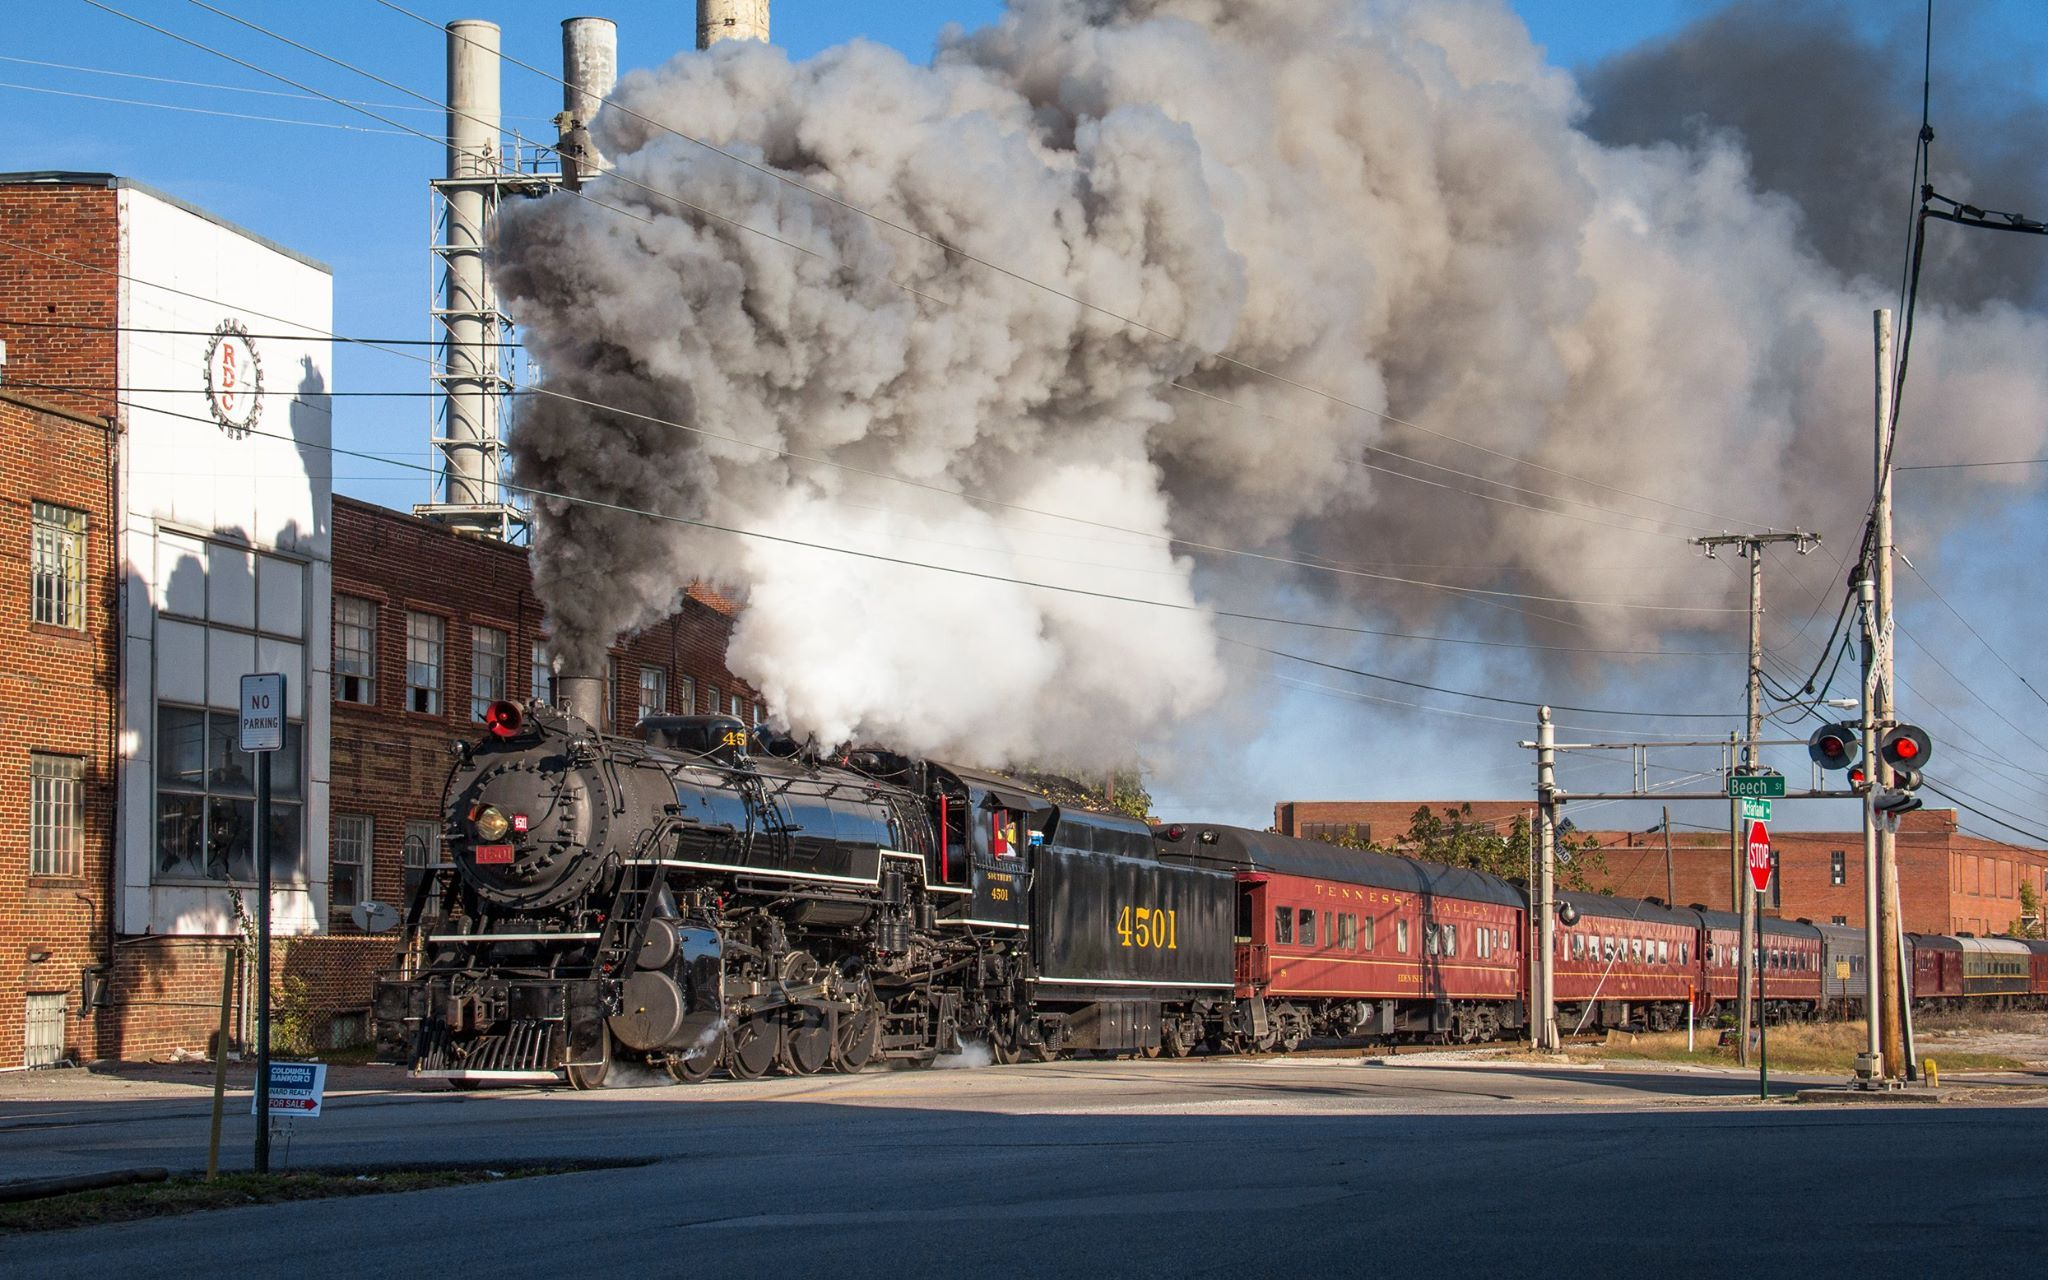 Recently restored Southern Railway Mikado #4501 hauls the Tennessee Valley Railroad Museum's Summerville Steam Special excursion through the northwest Georgia border town of Rossville on a cool October morning. Behind the train is an old Peerless Woolen Mills site which out-dates the '01 by six years. Rossville, Georgia; 10/25/2014